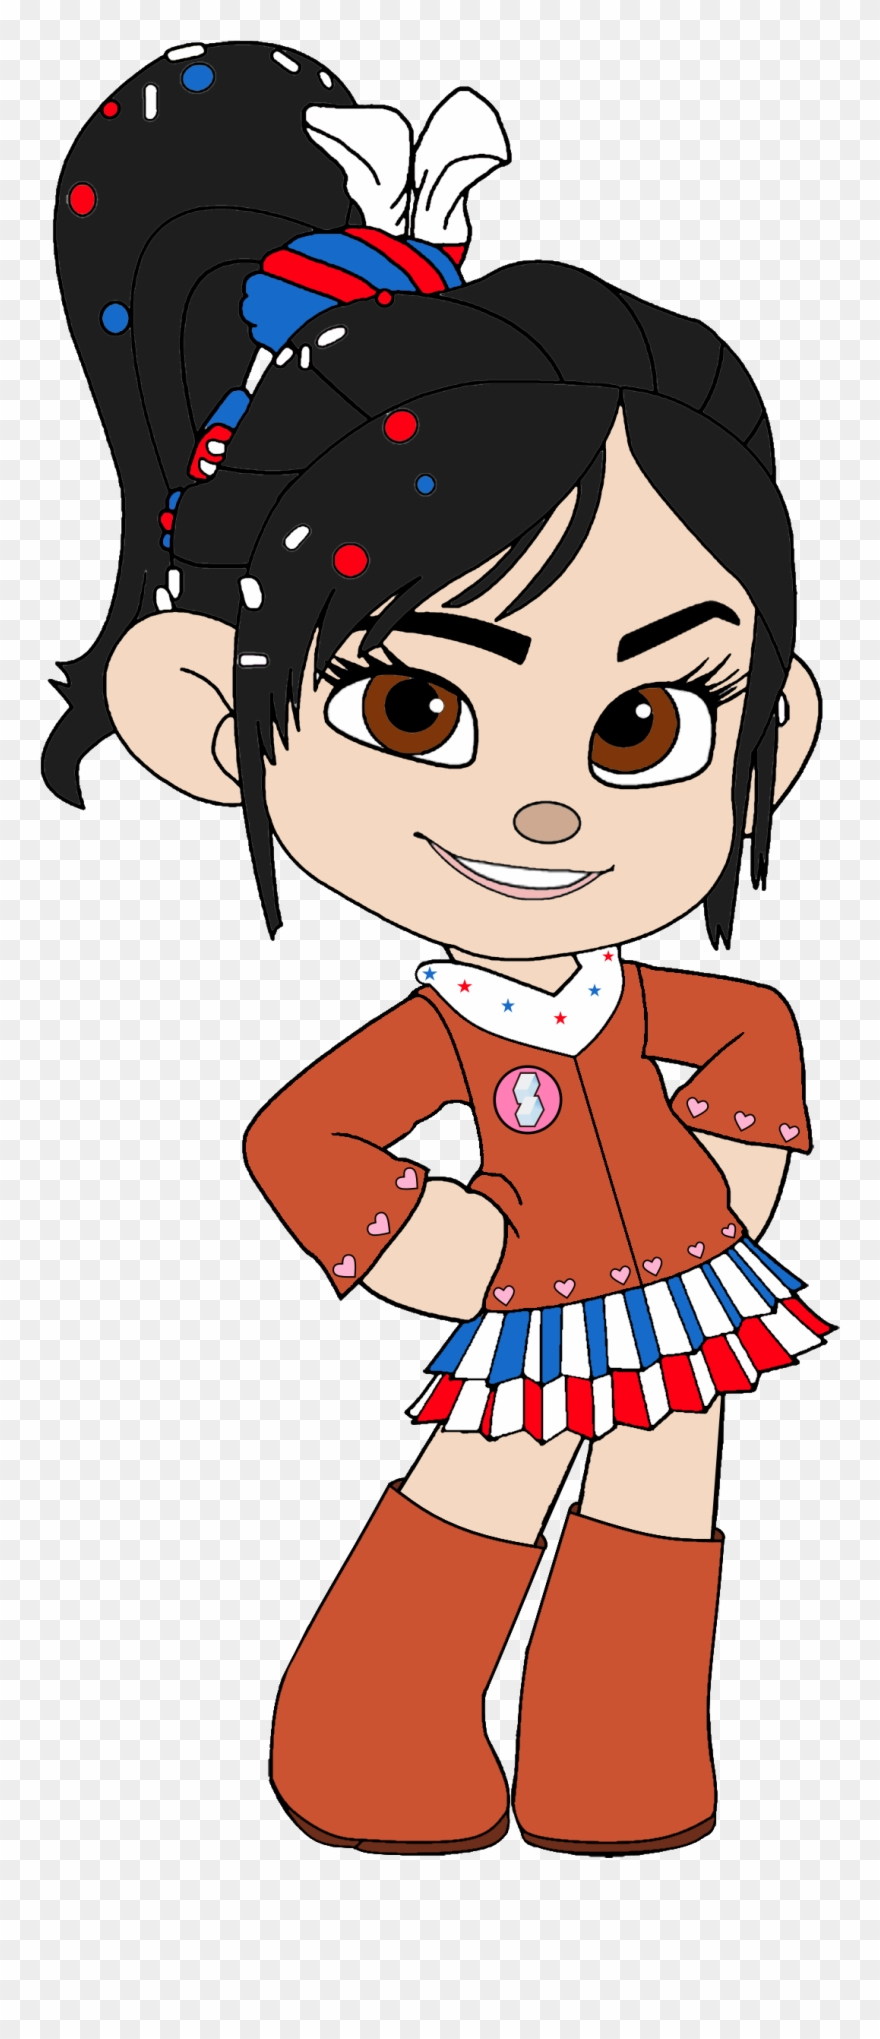 Png wreck it ralph. Cowgirl clipart princess